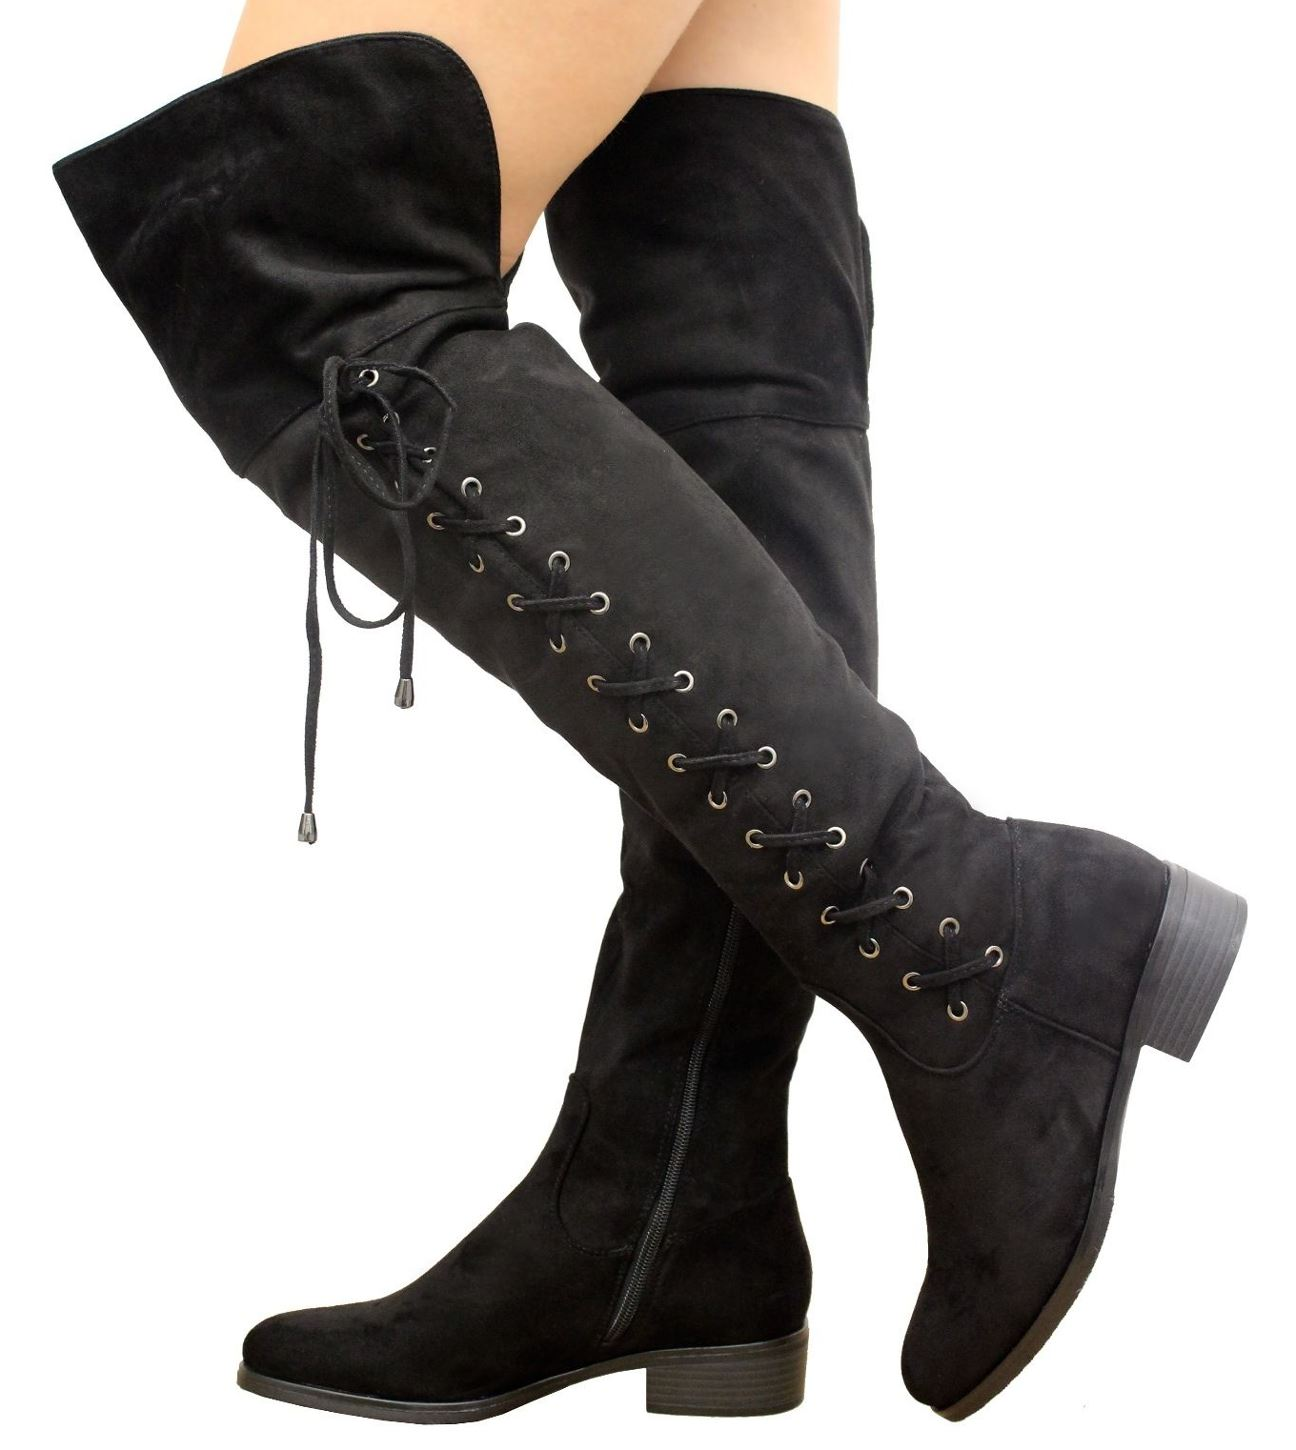 s thigh high lace up the knee foldover low heel